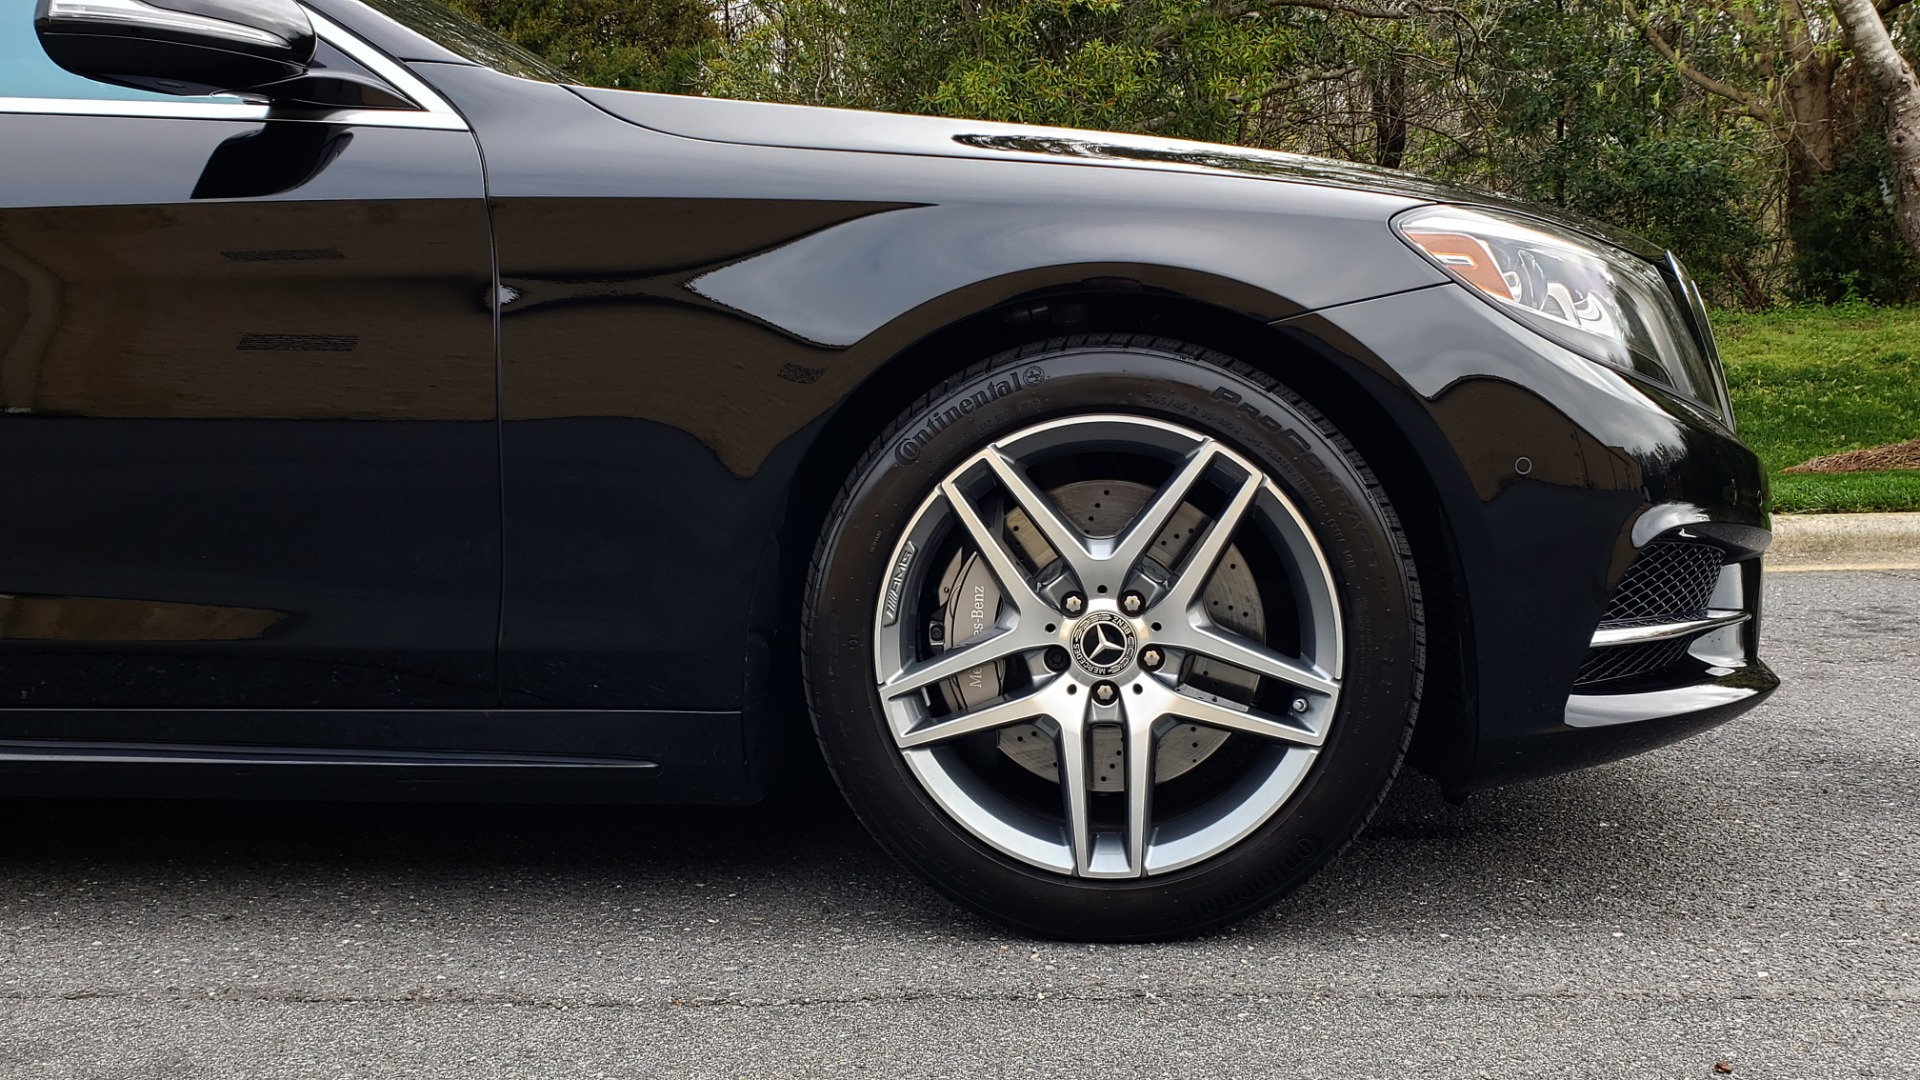 Used 2017 Mercedes-Benz S-CLASS S 550 4MATIC SPORT / PREM PKG / WARMTH & COMFORT / KEYLESS-GO for sale Sold at Formula Imports in Charlotte NC 28227 96